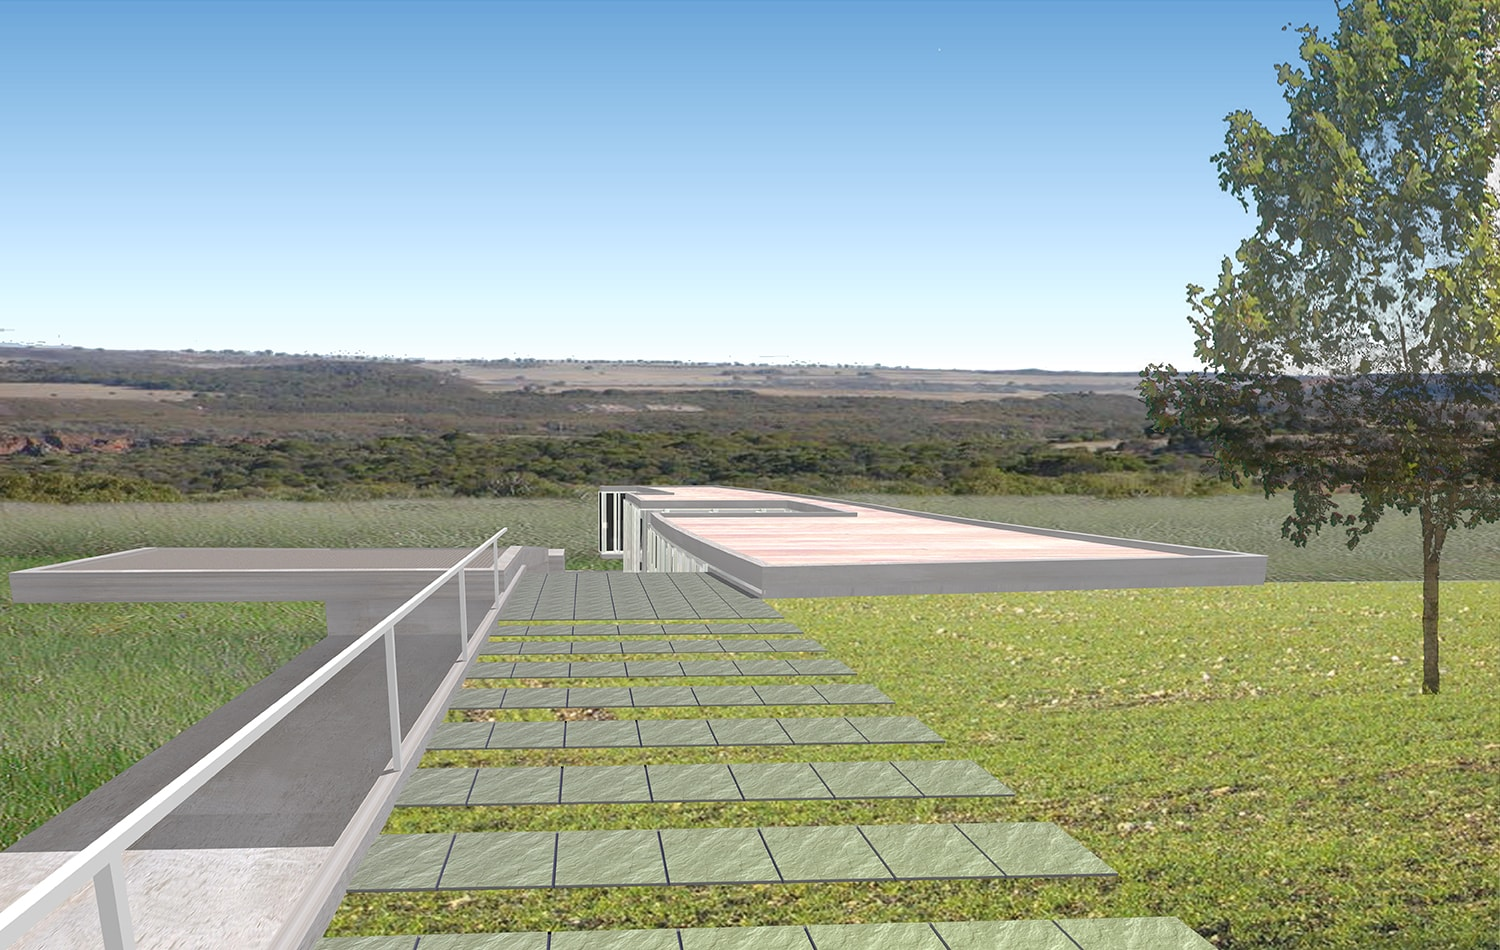 Entrance Approach View Rendering: Lawrence Kim